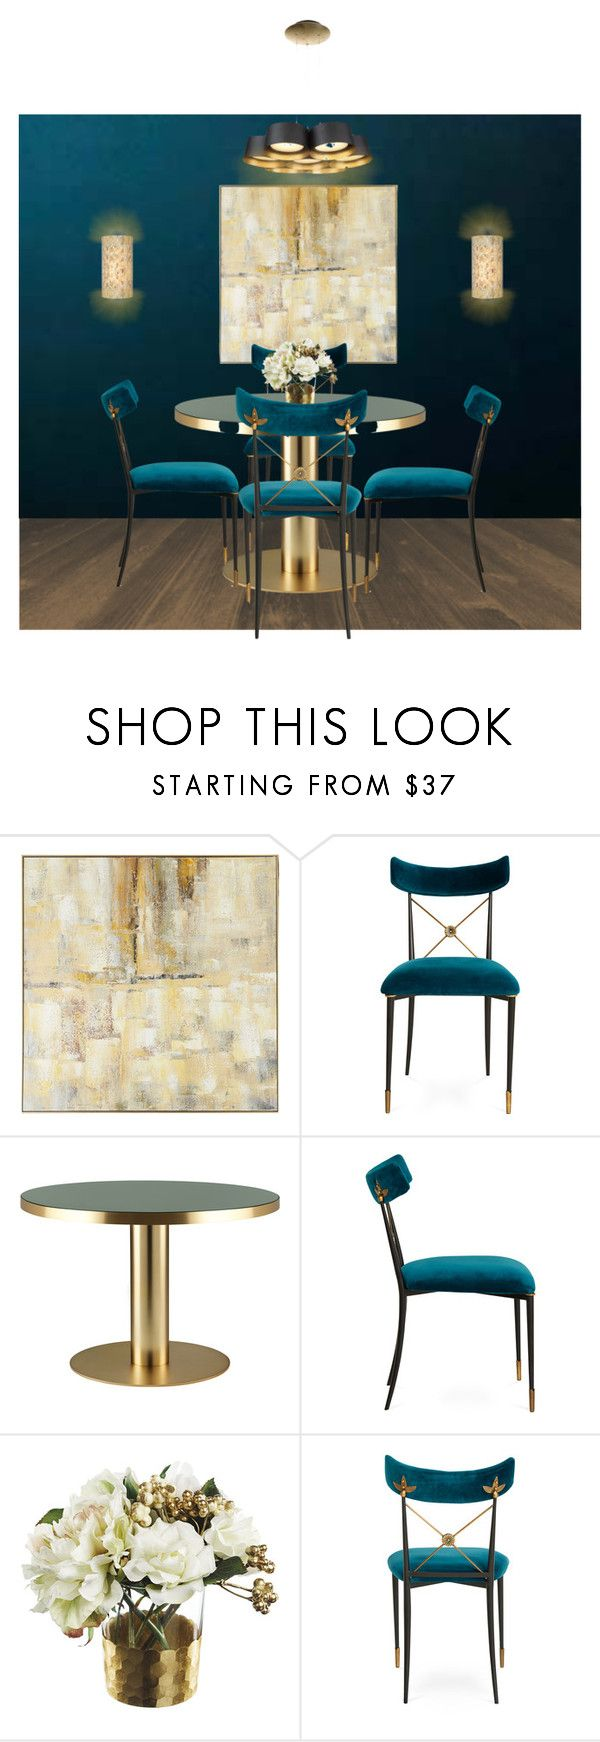 """""""Elegant Dining Table"""" by sentioinfinitum ❤ liked on Polyvore featuring interior, interiors, interior design, home, home decor, interior decorating, Pier 1 Imports, Gubi, Paper Whites and Tech Lighting"""